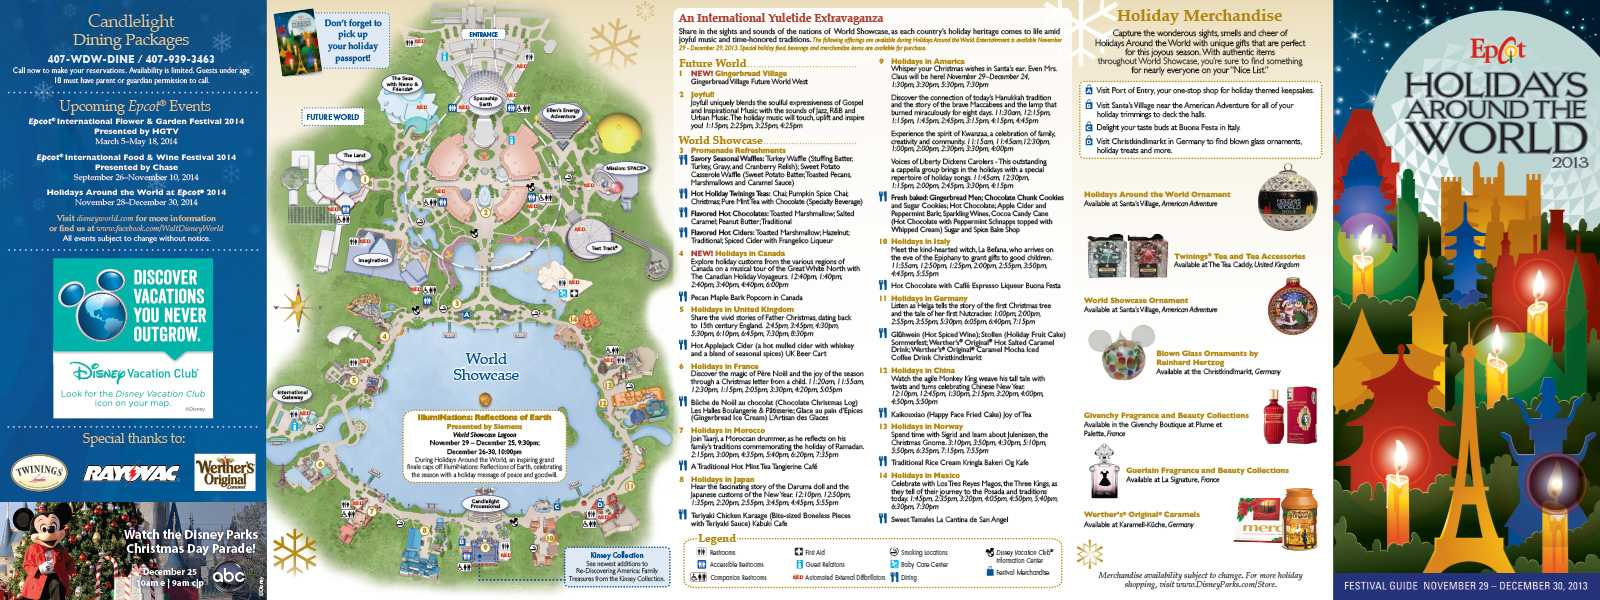 2013 Holidays Around the World guide - 1